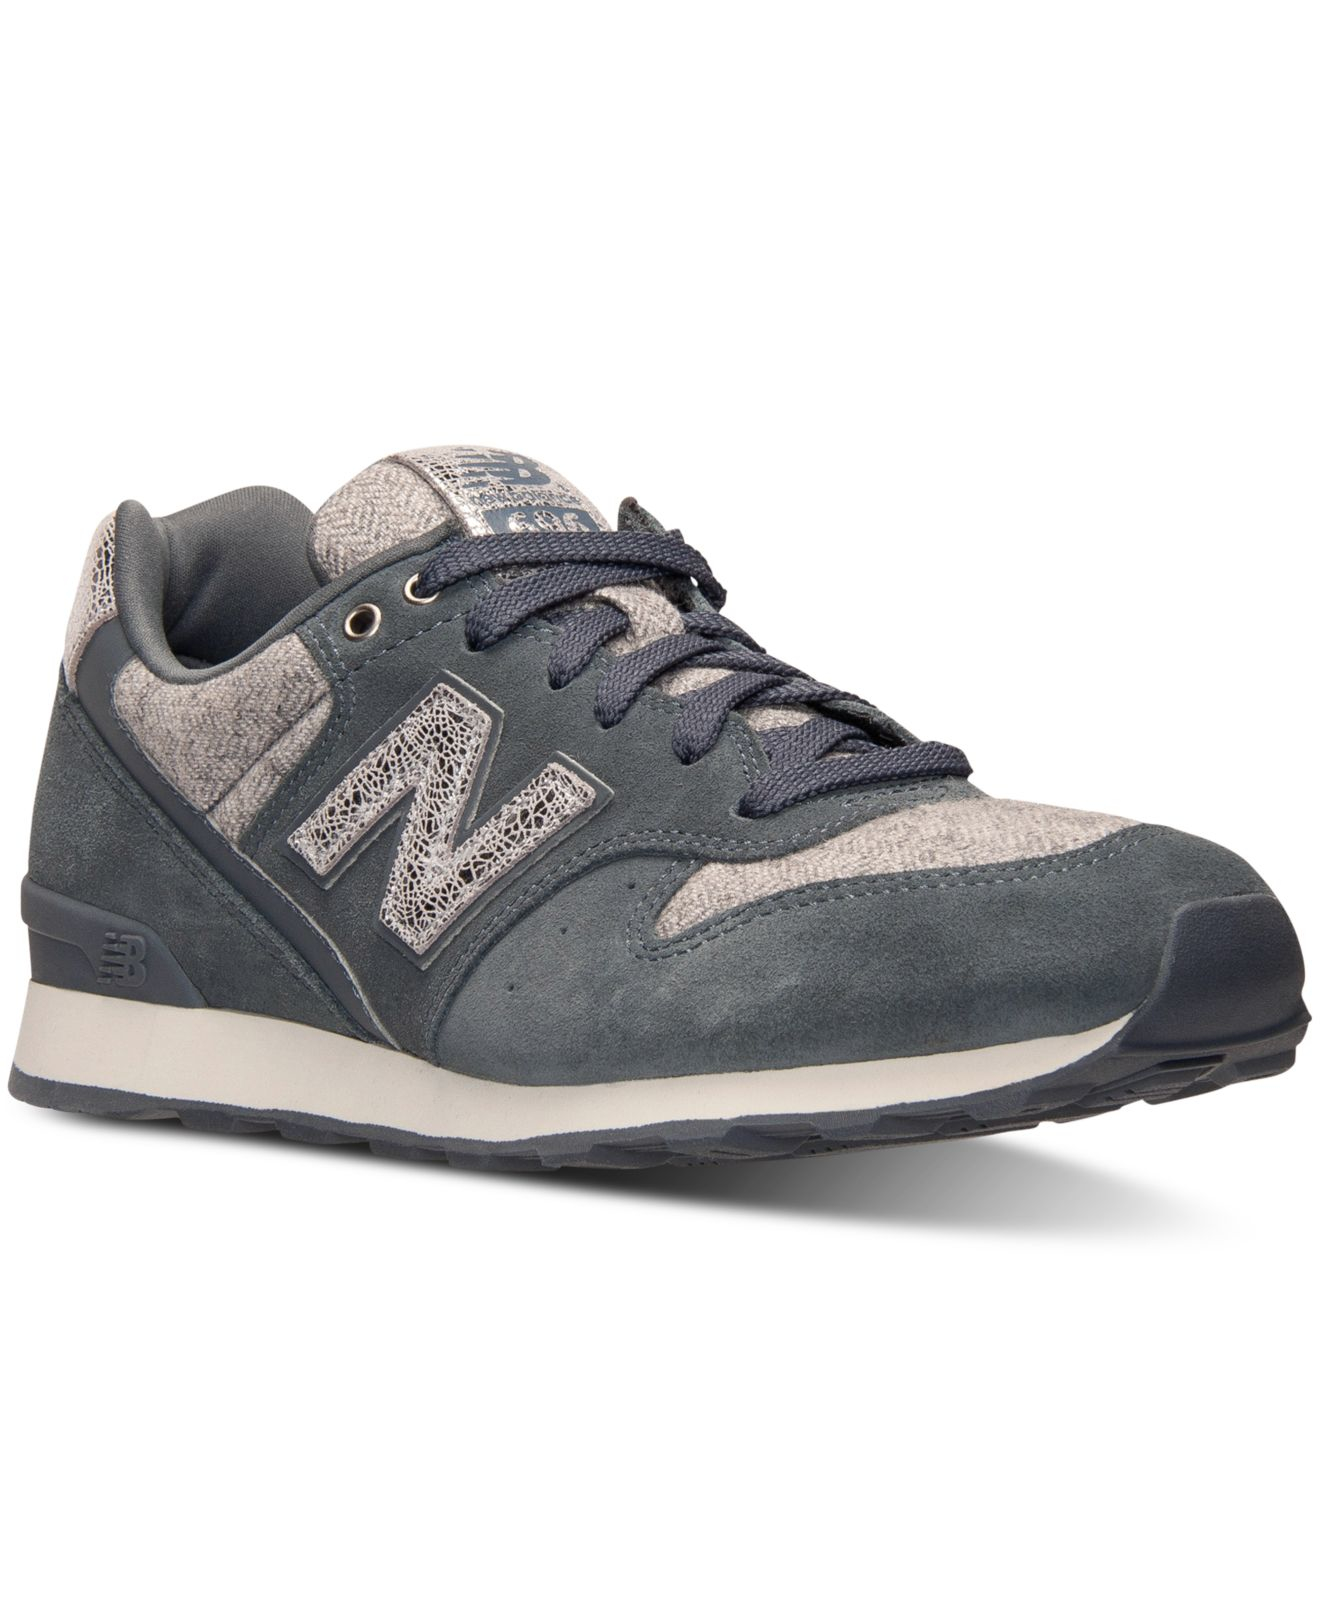 lyst new balance women 39 s 696 casual sneakers from finish line in gray. Black Bedroom Furniture Sets. Home Design Ideas